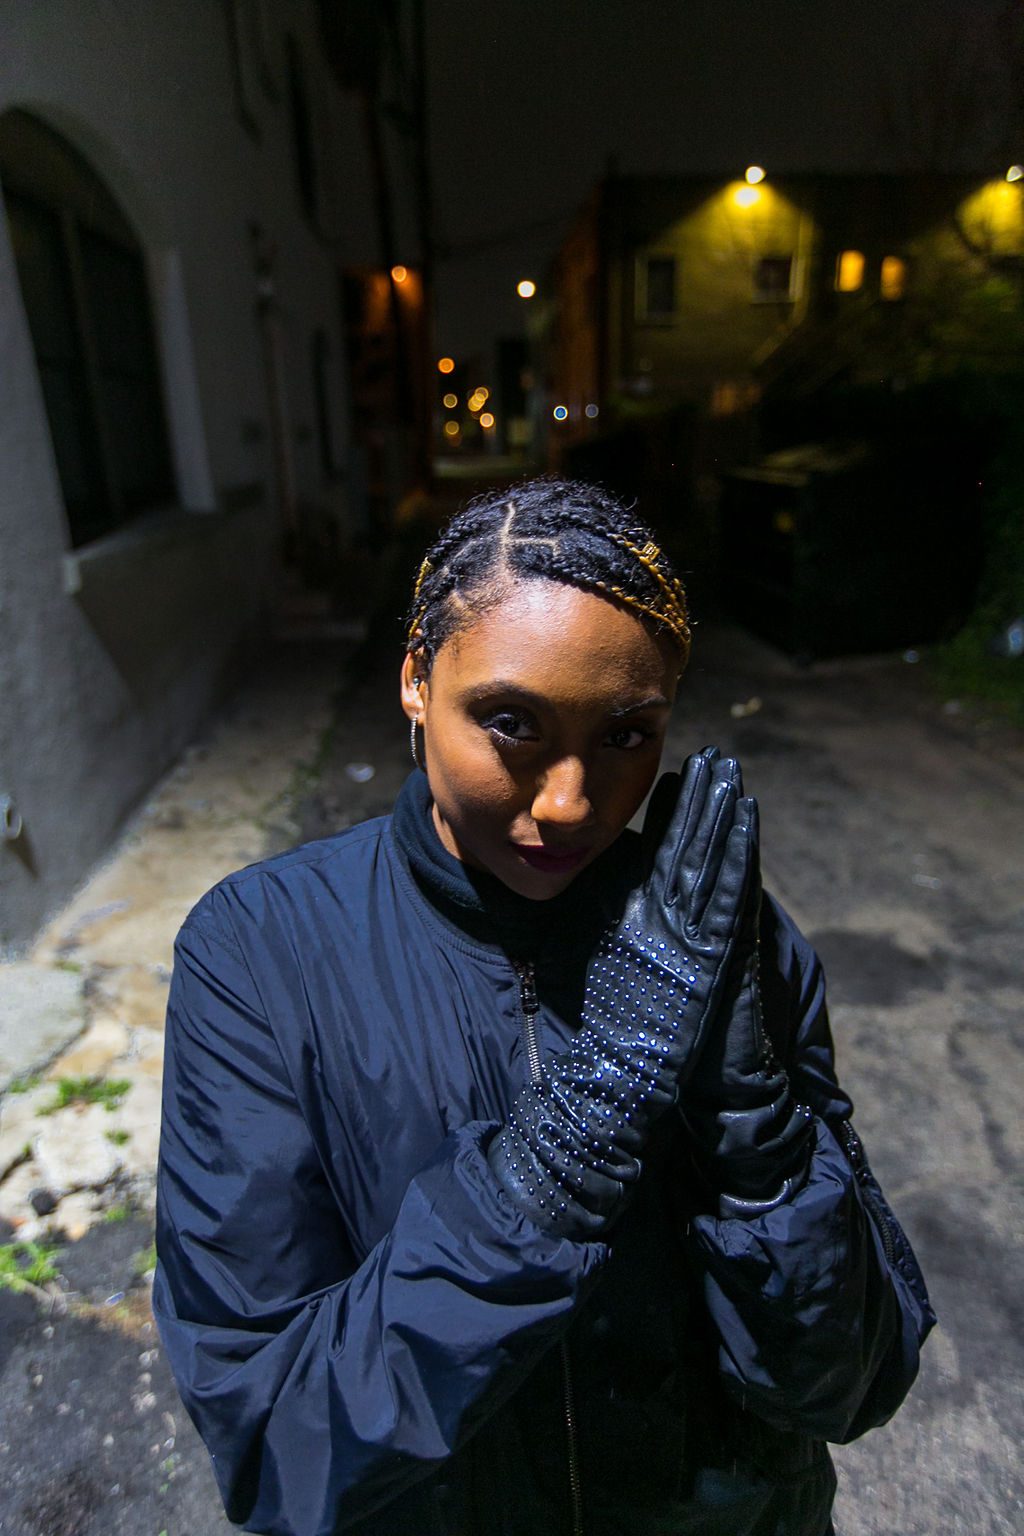 xmmtt-braids-rsee-lcm-wear who you are-prayer hands